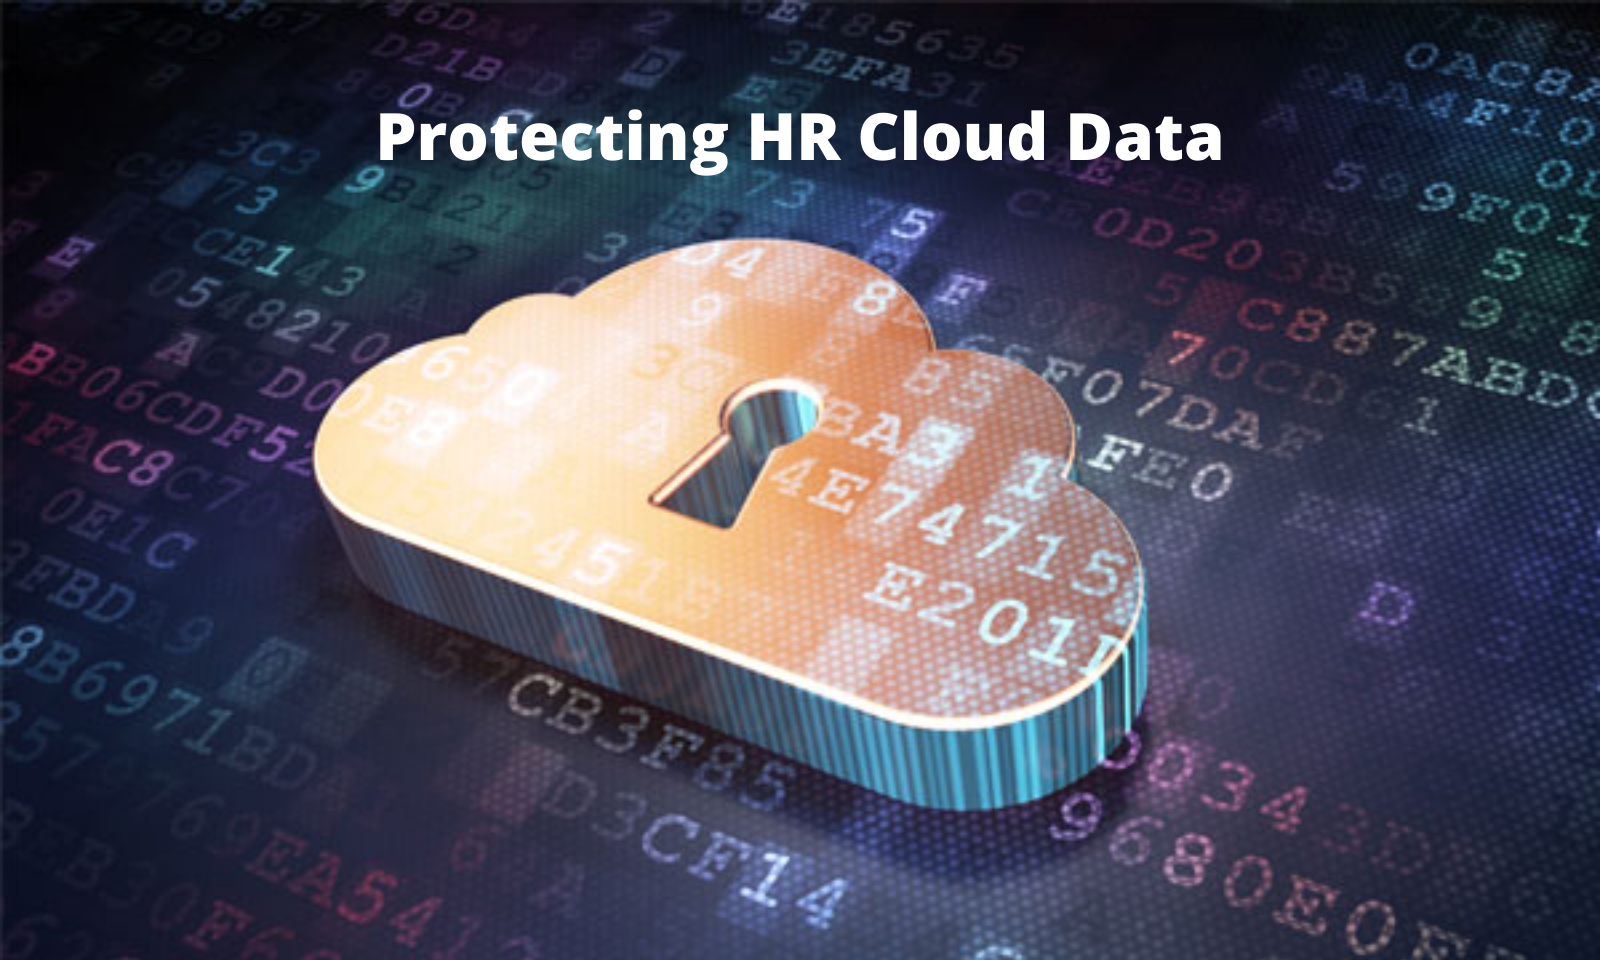 Protecting HR Cloud Data